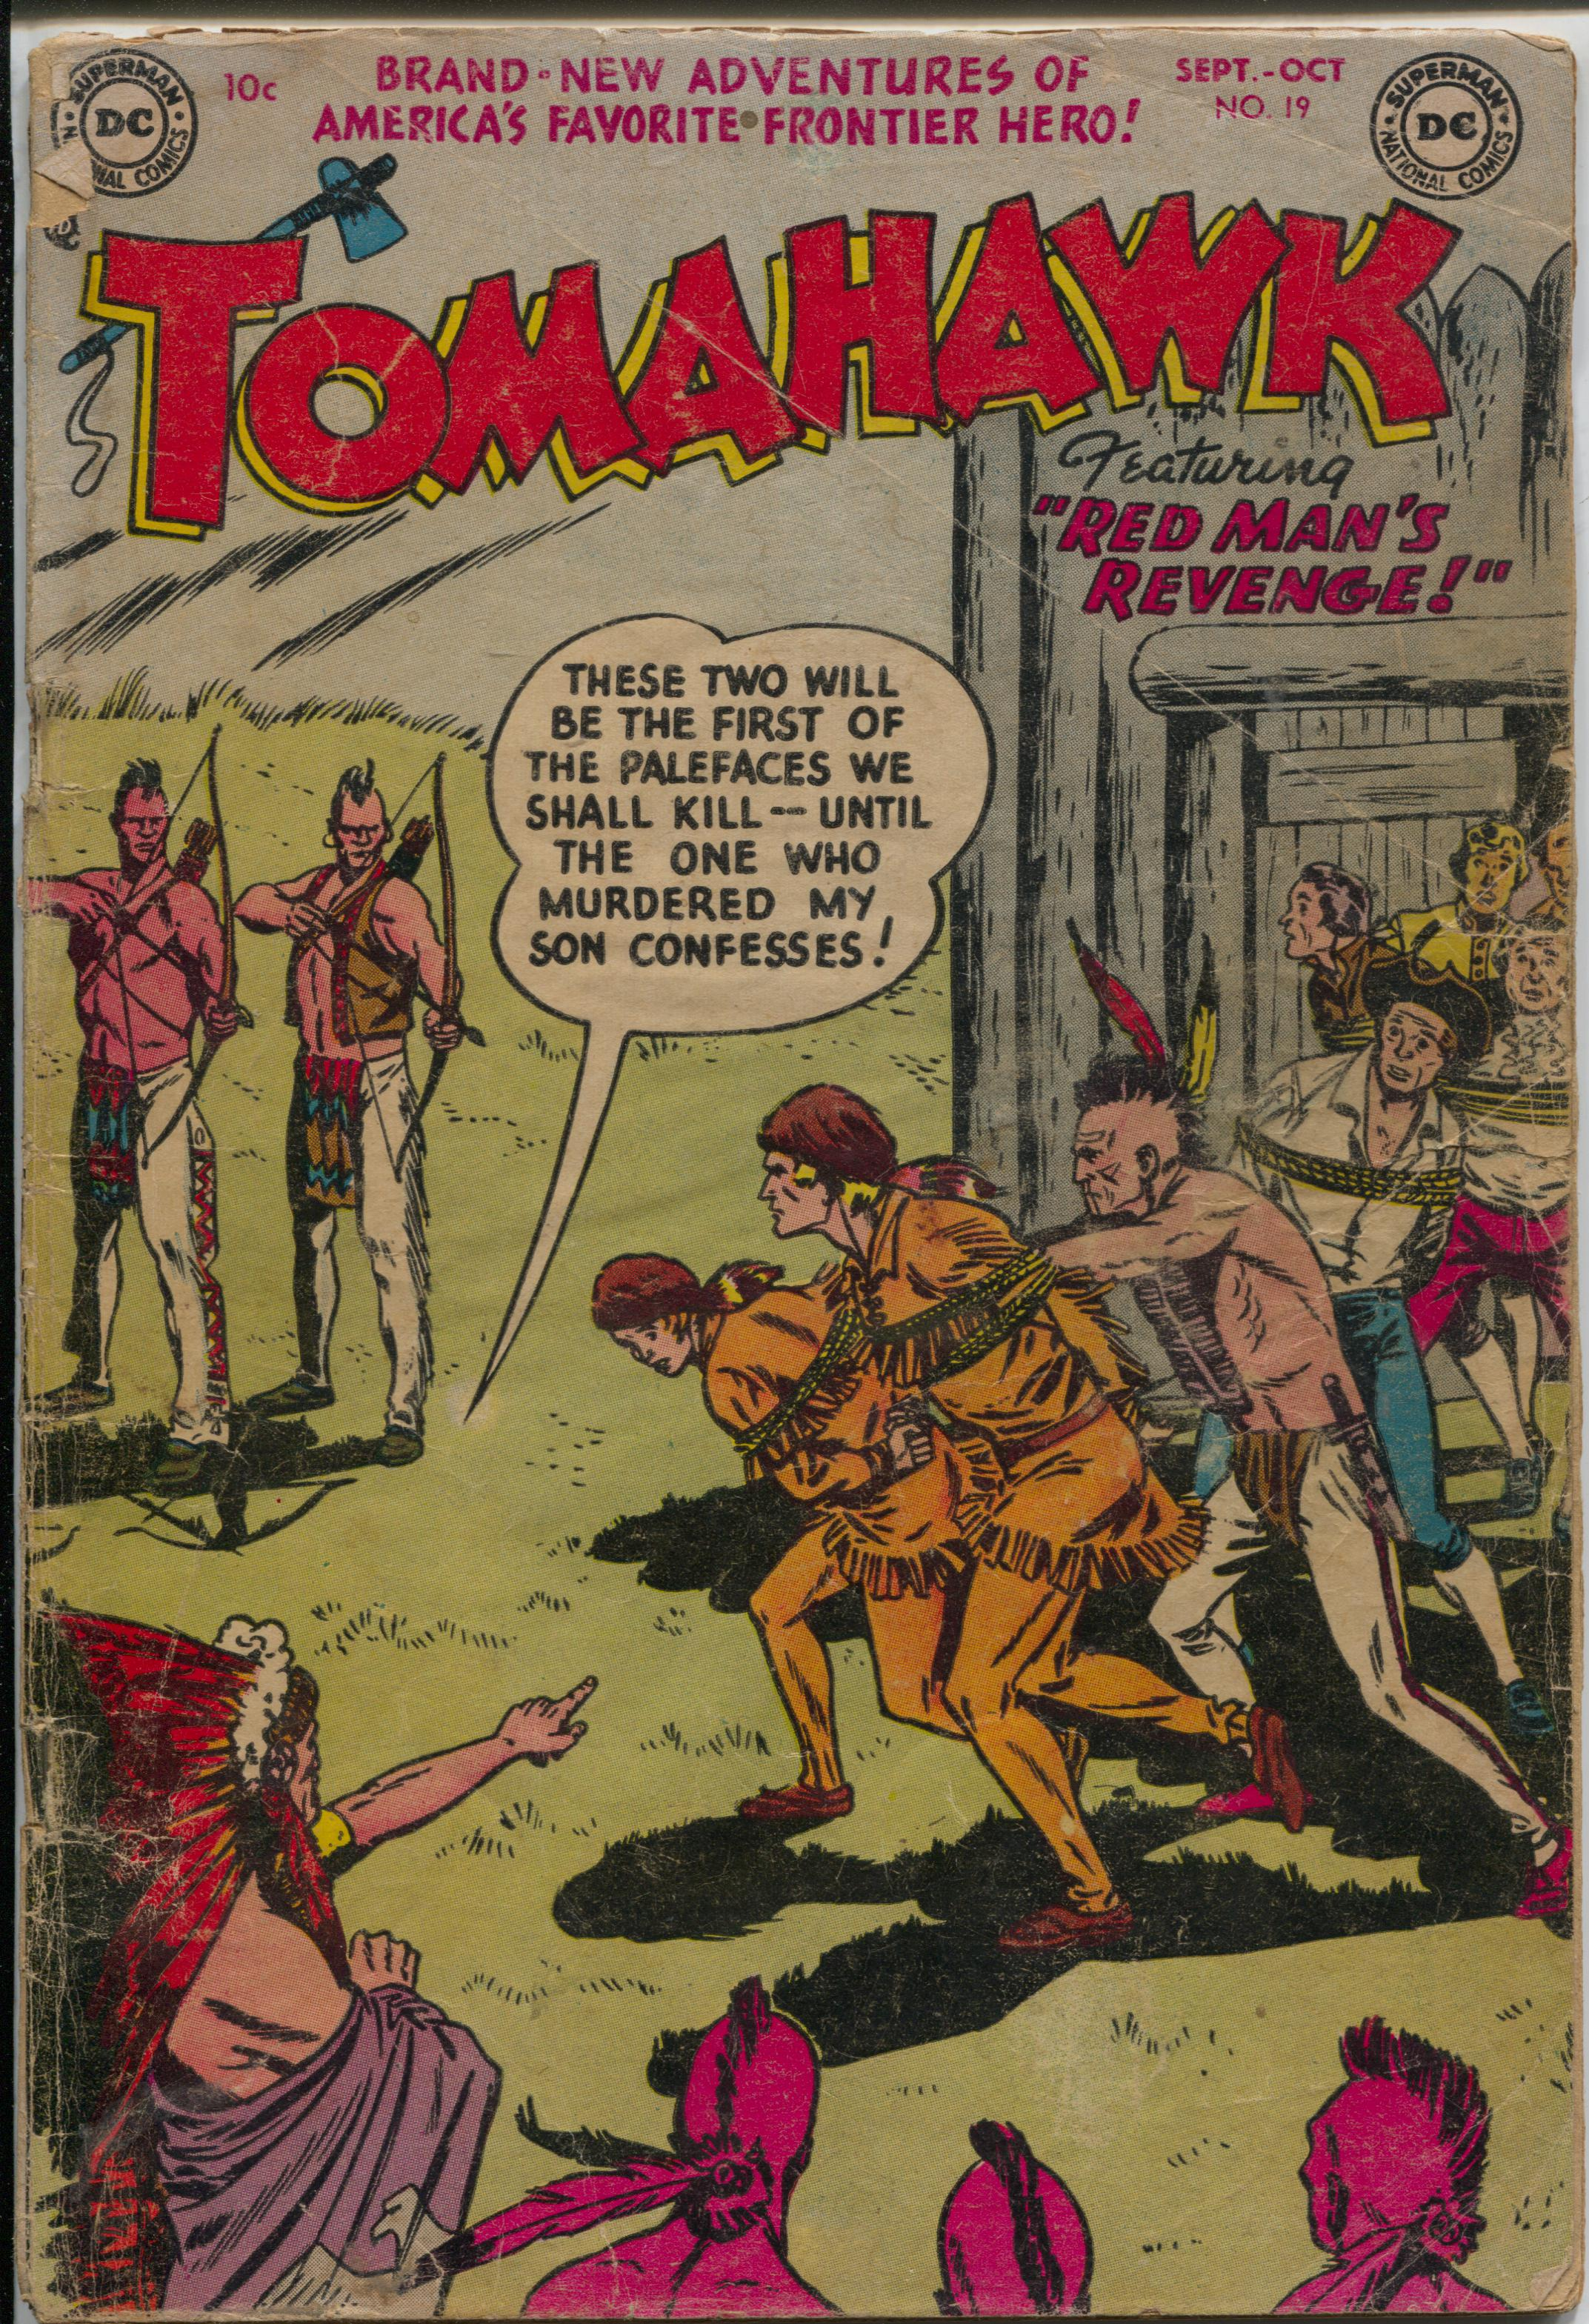 Tomahawk #19 1953-DC-Red Coats-Indian terror-G Good -Indian terror -Fight the Red Coats Condition: G